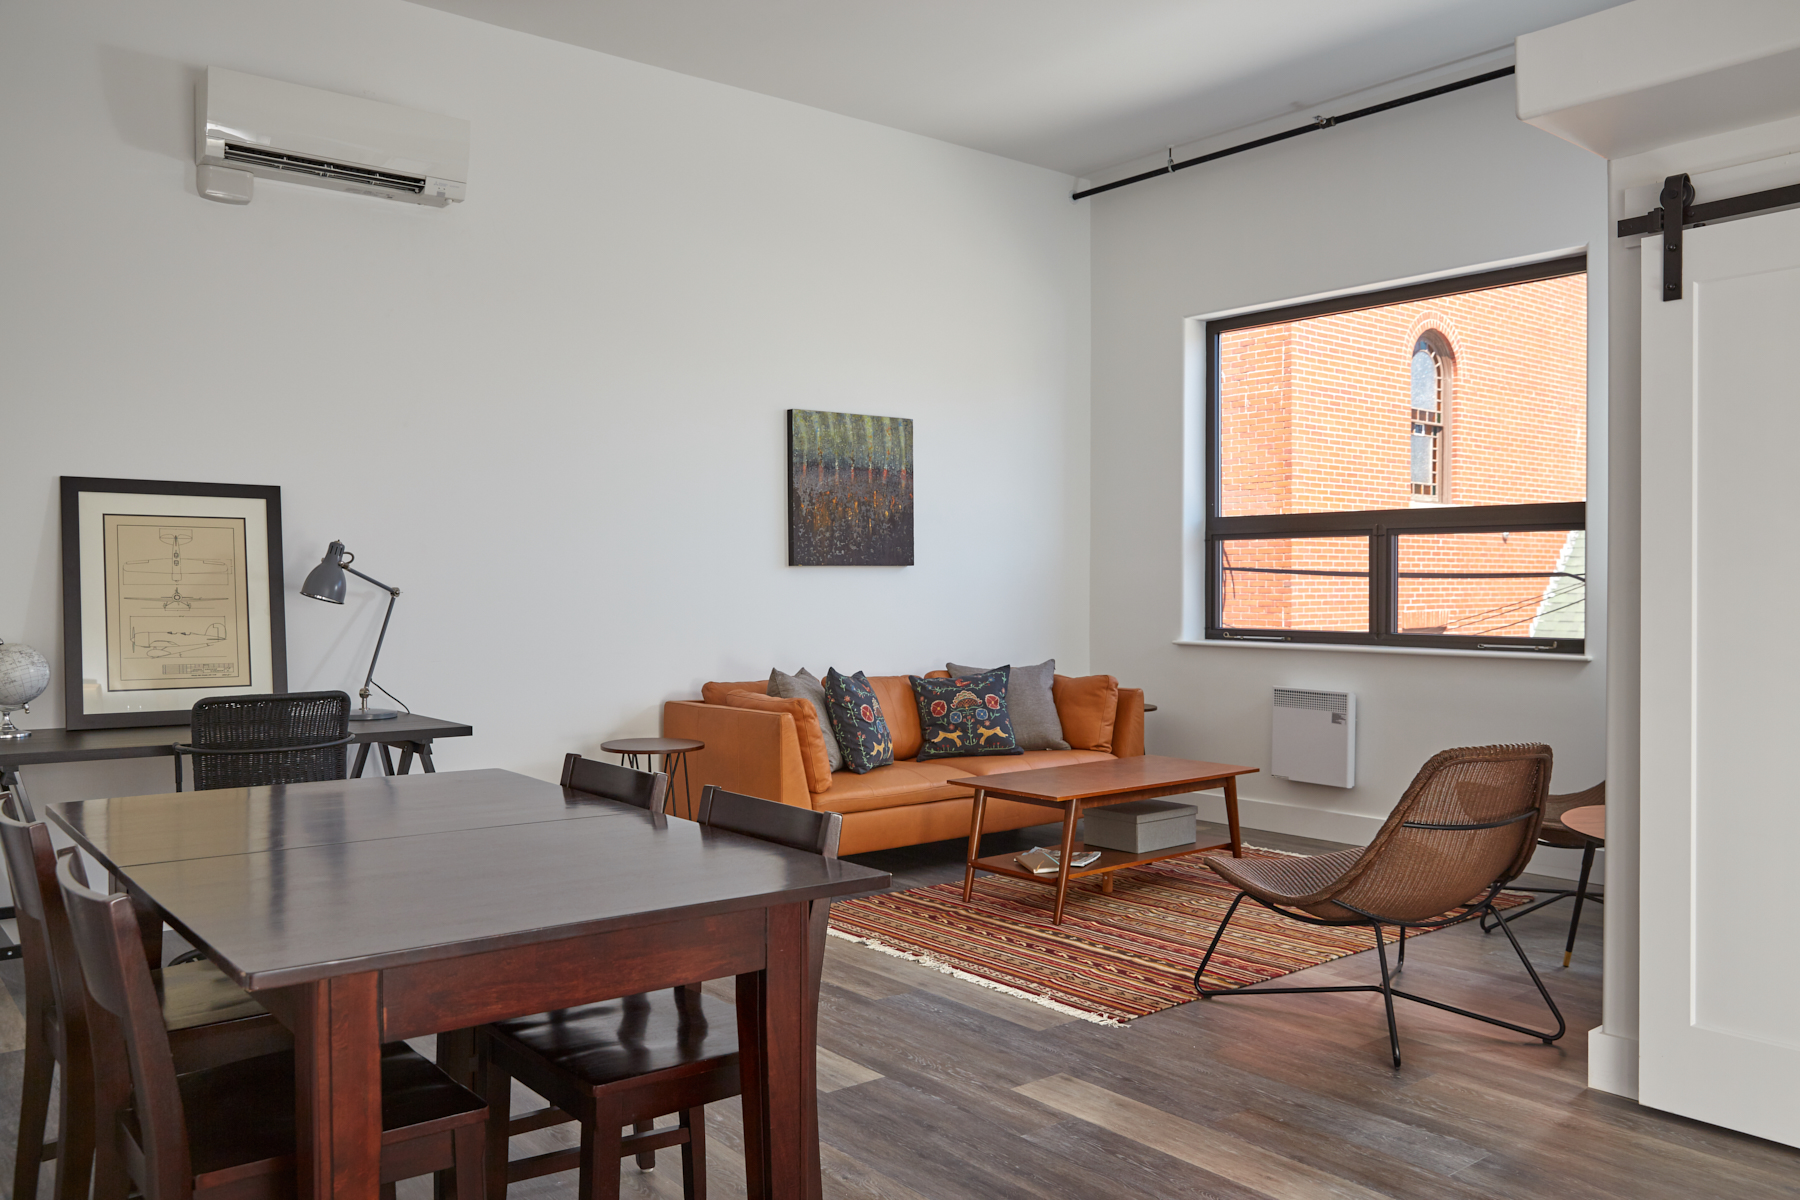 EastEndLofts_March2017-05.jpg